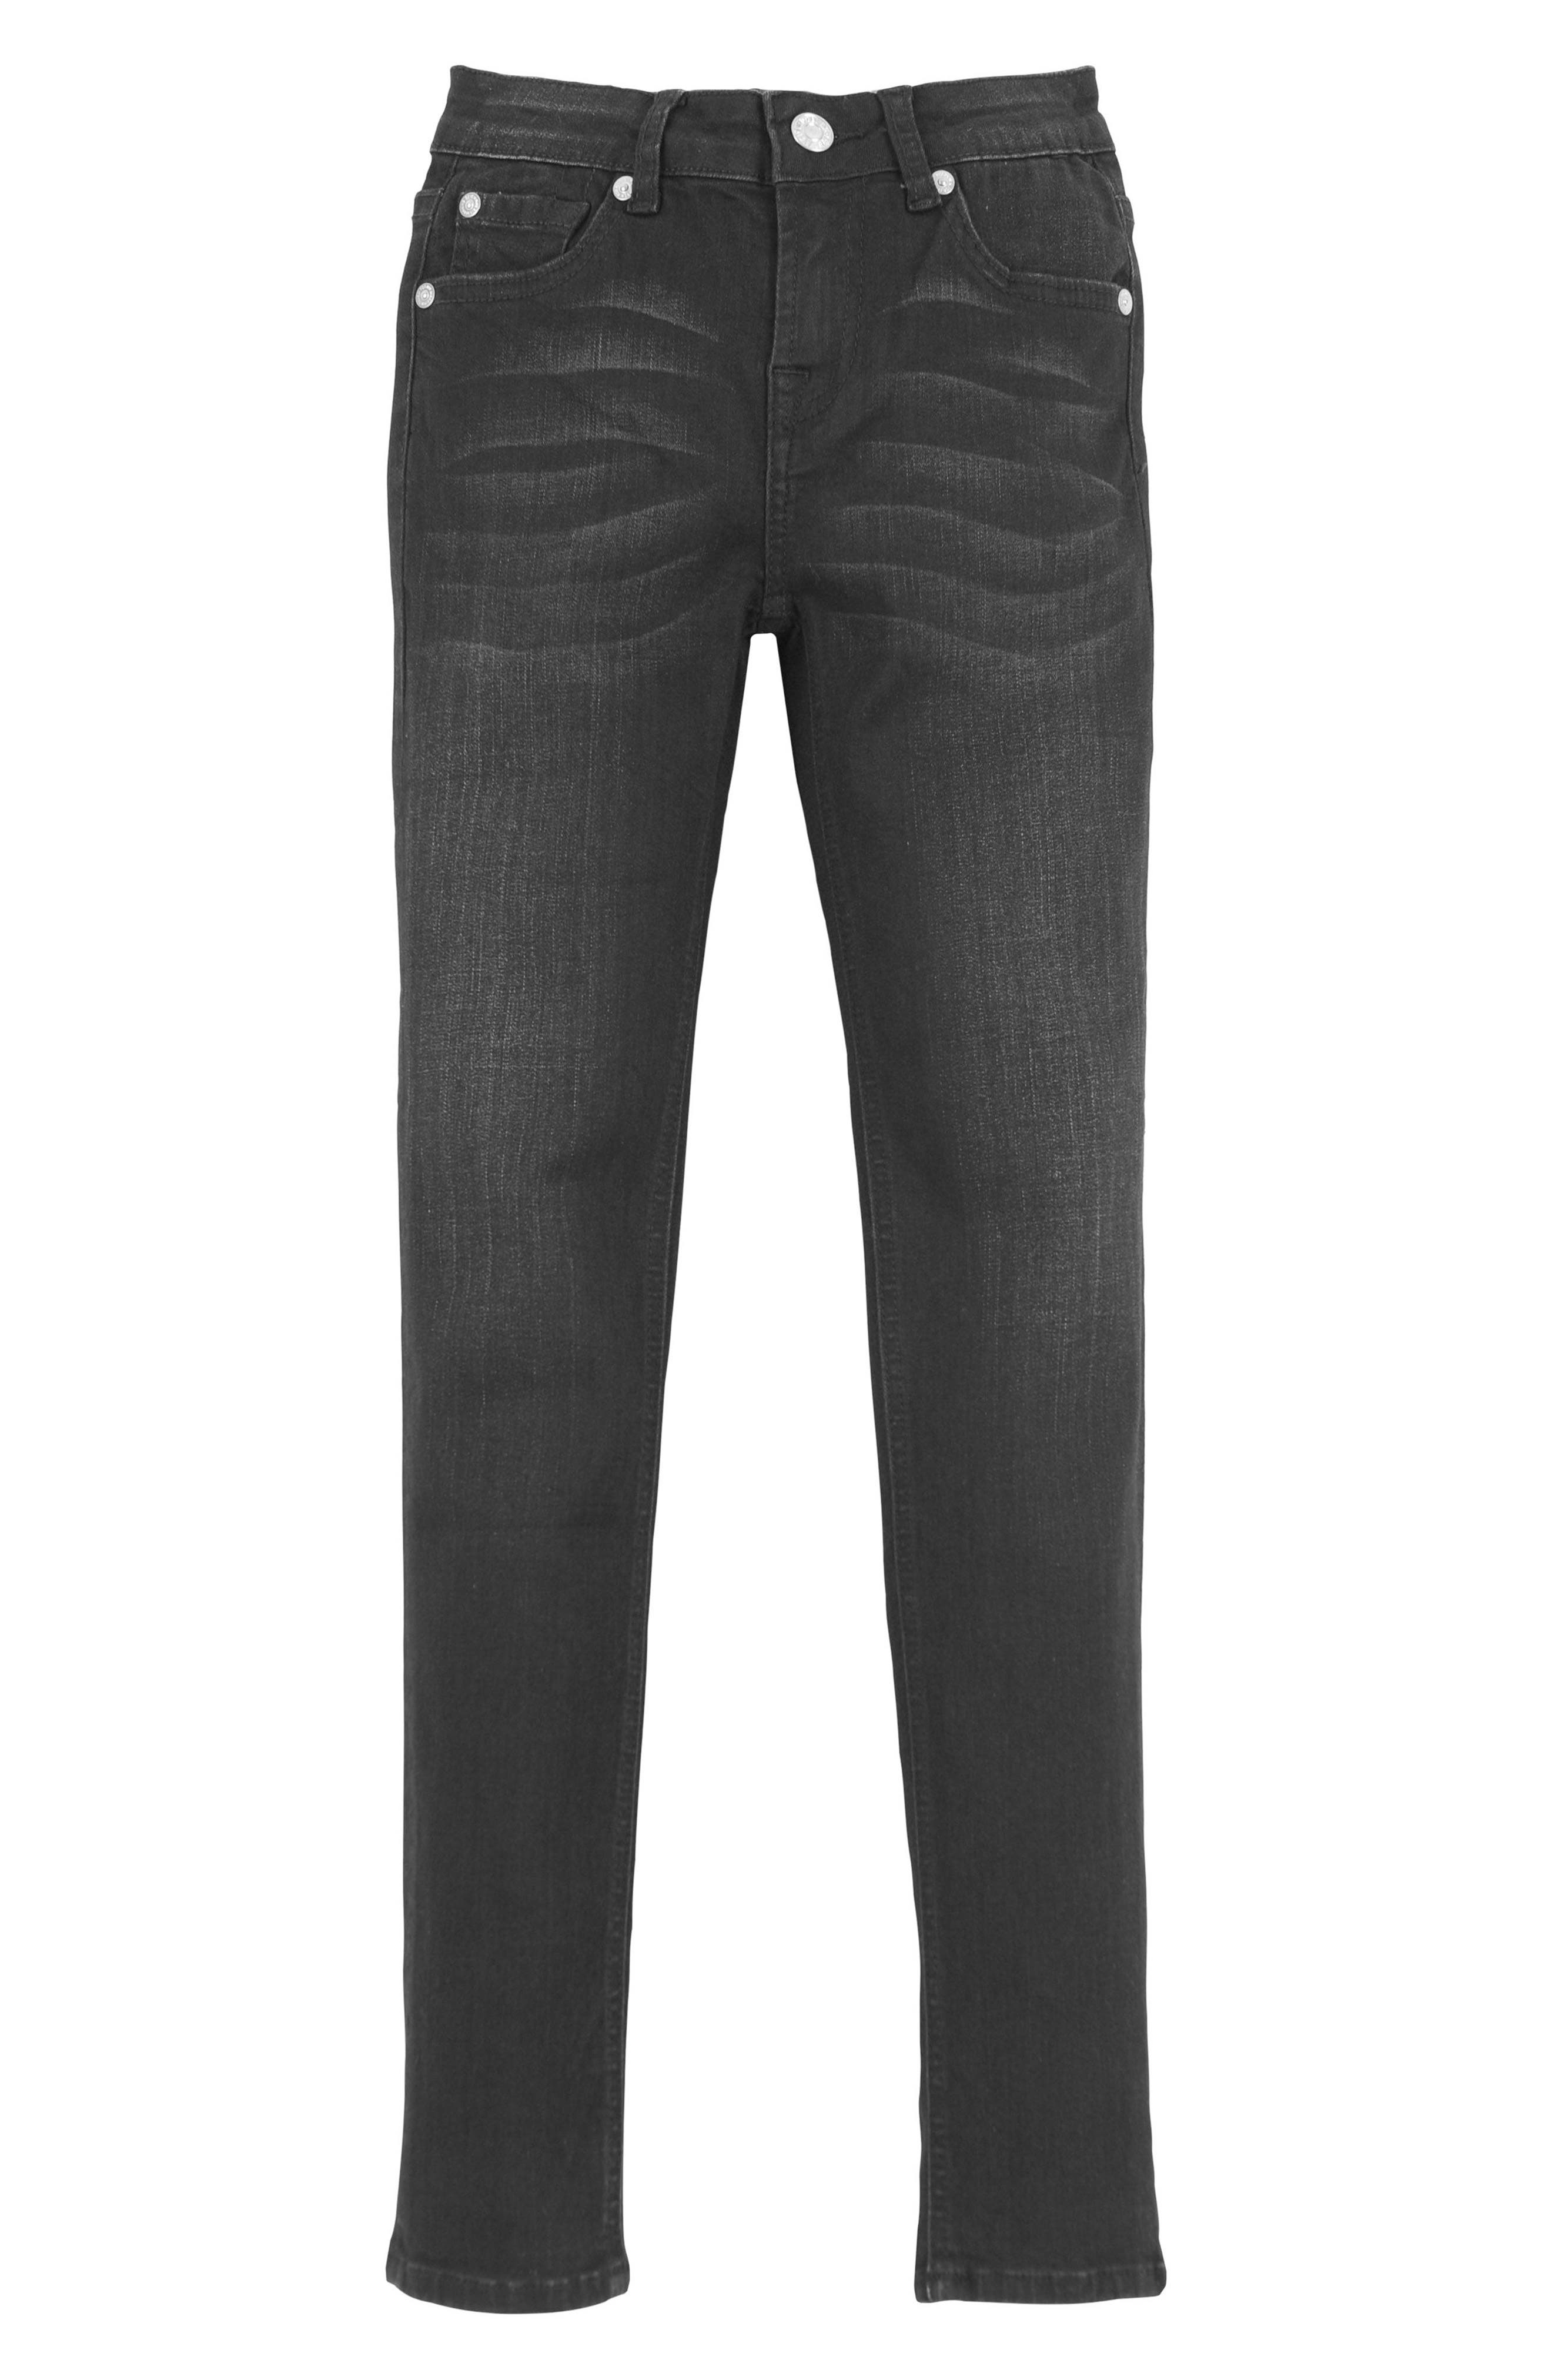 Slimmy Slim Fit Jeans,                         Main,                         color, Storm Shadow